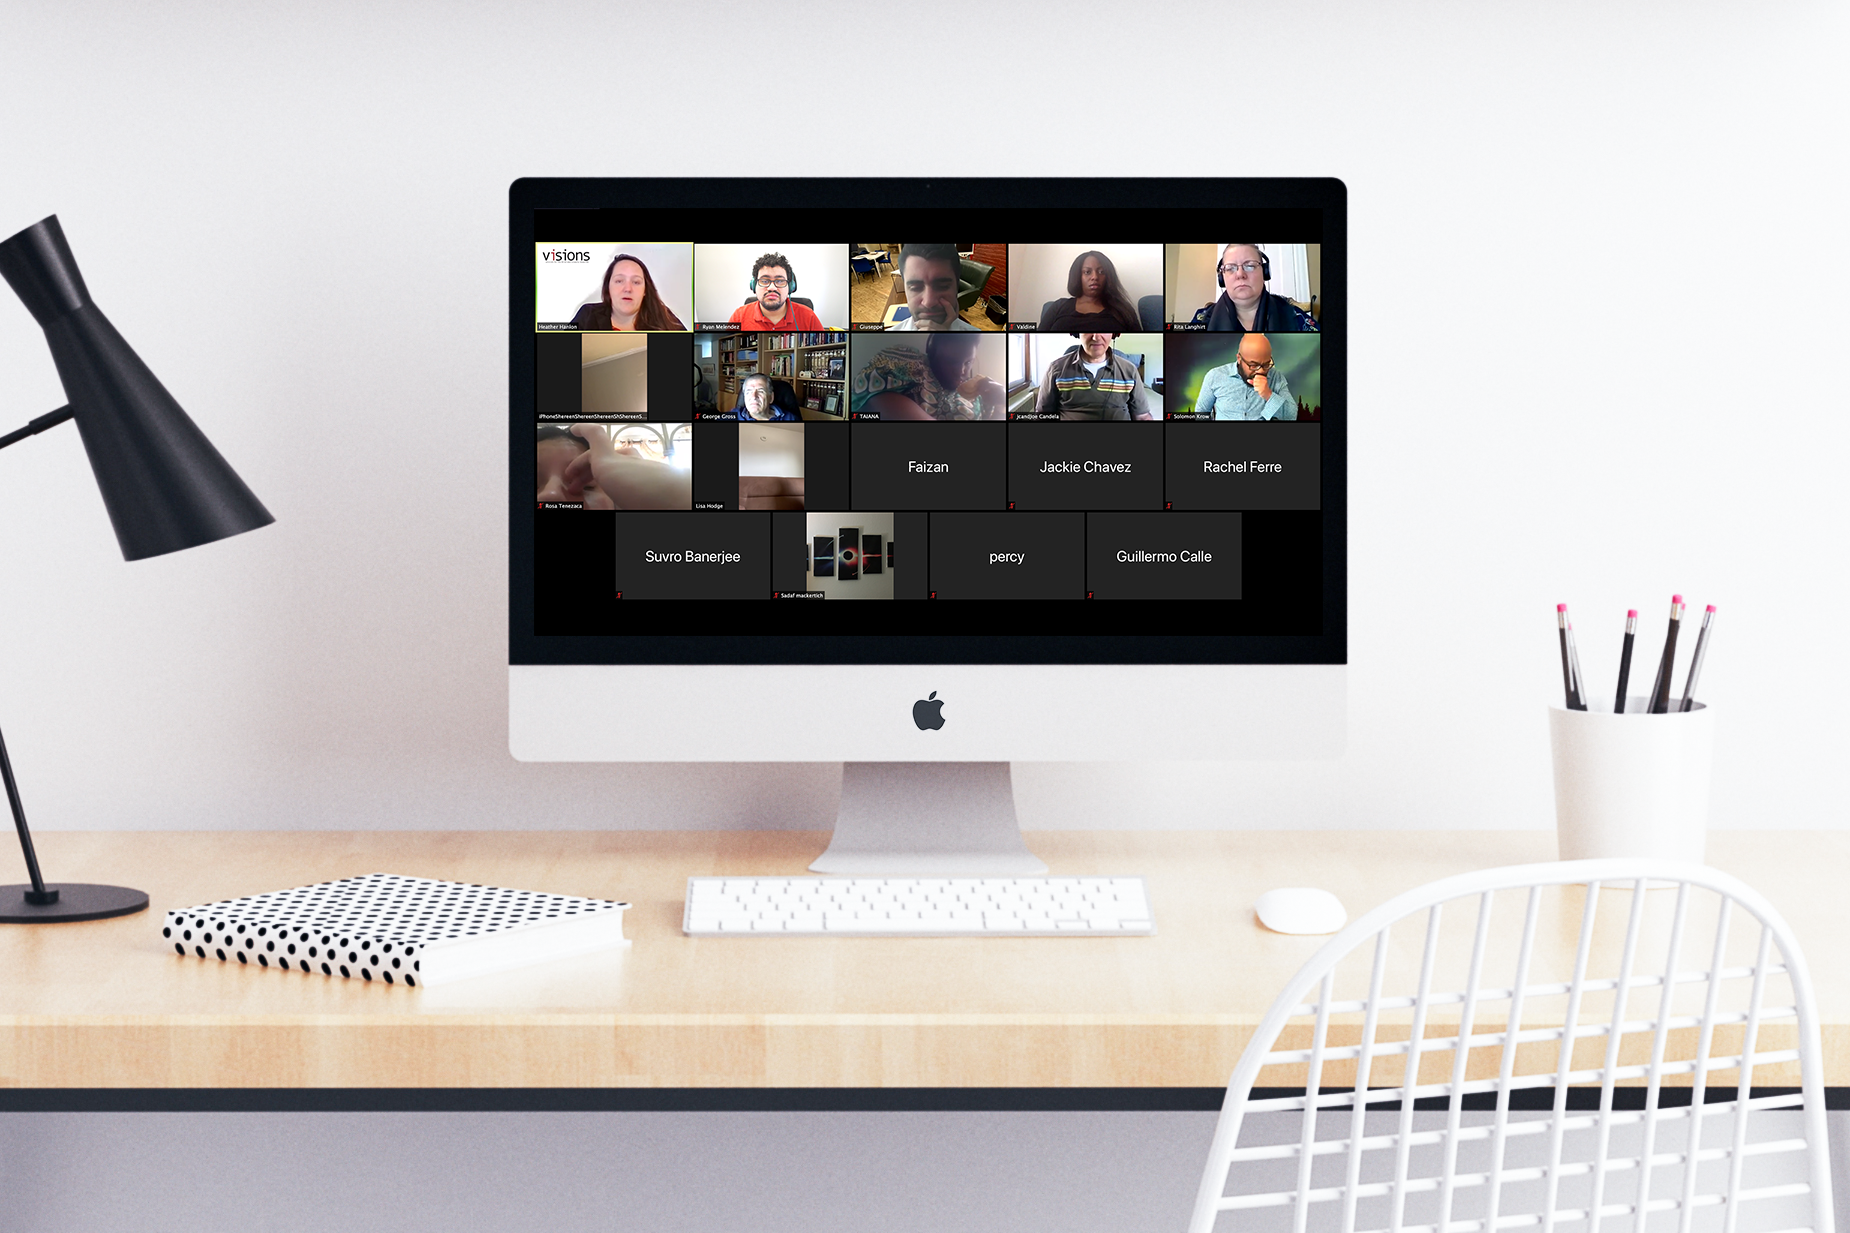 An iMac sits on a desk, its screen showing a Zoom video call in progress with 19 participants.